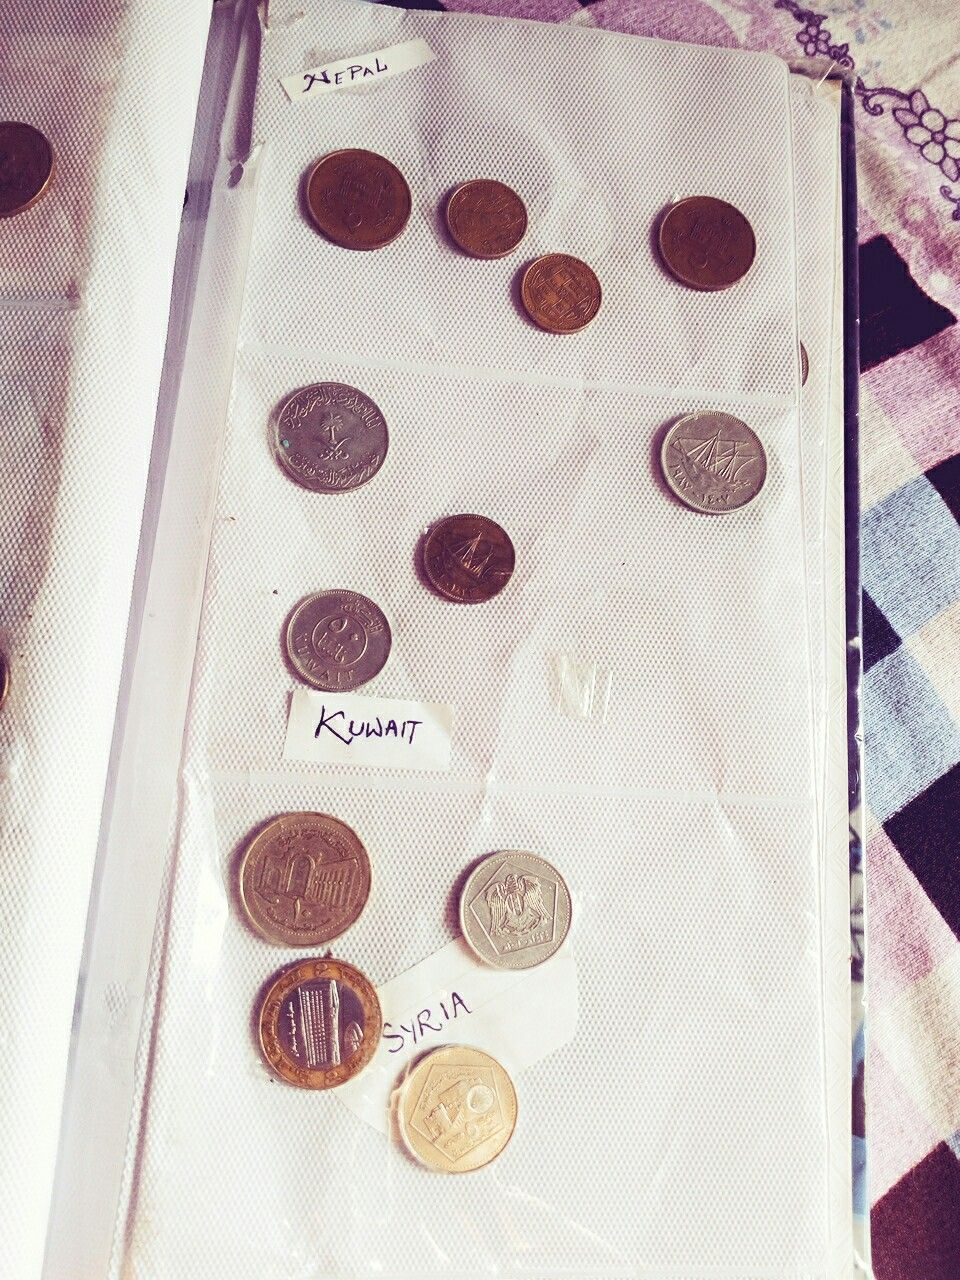 Currency's